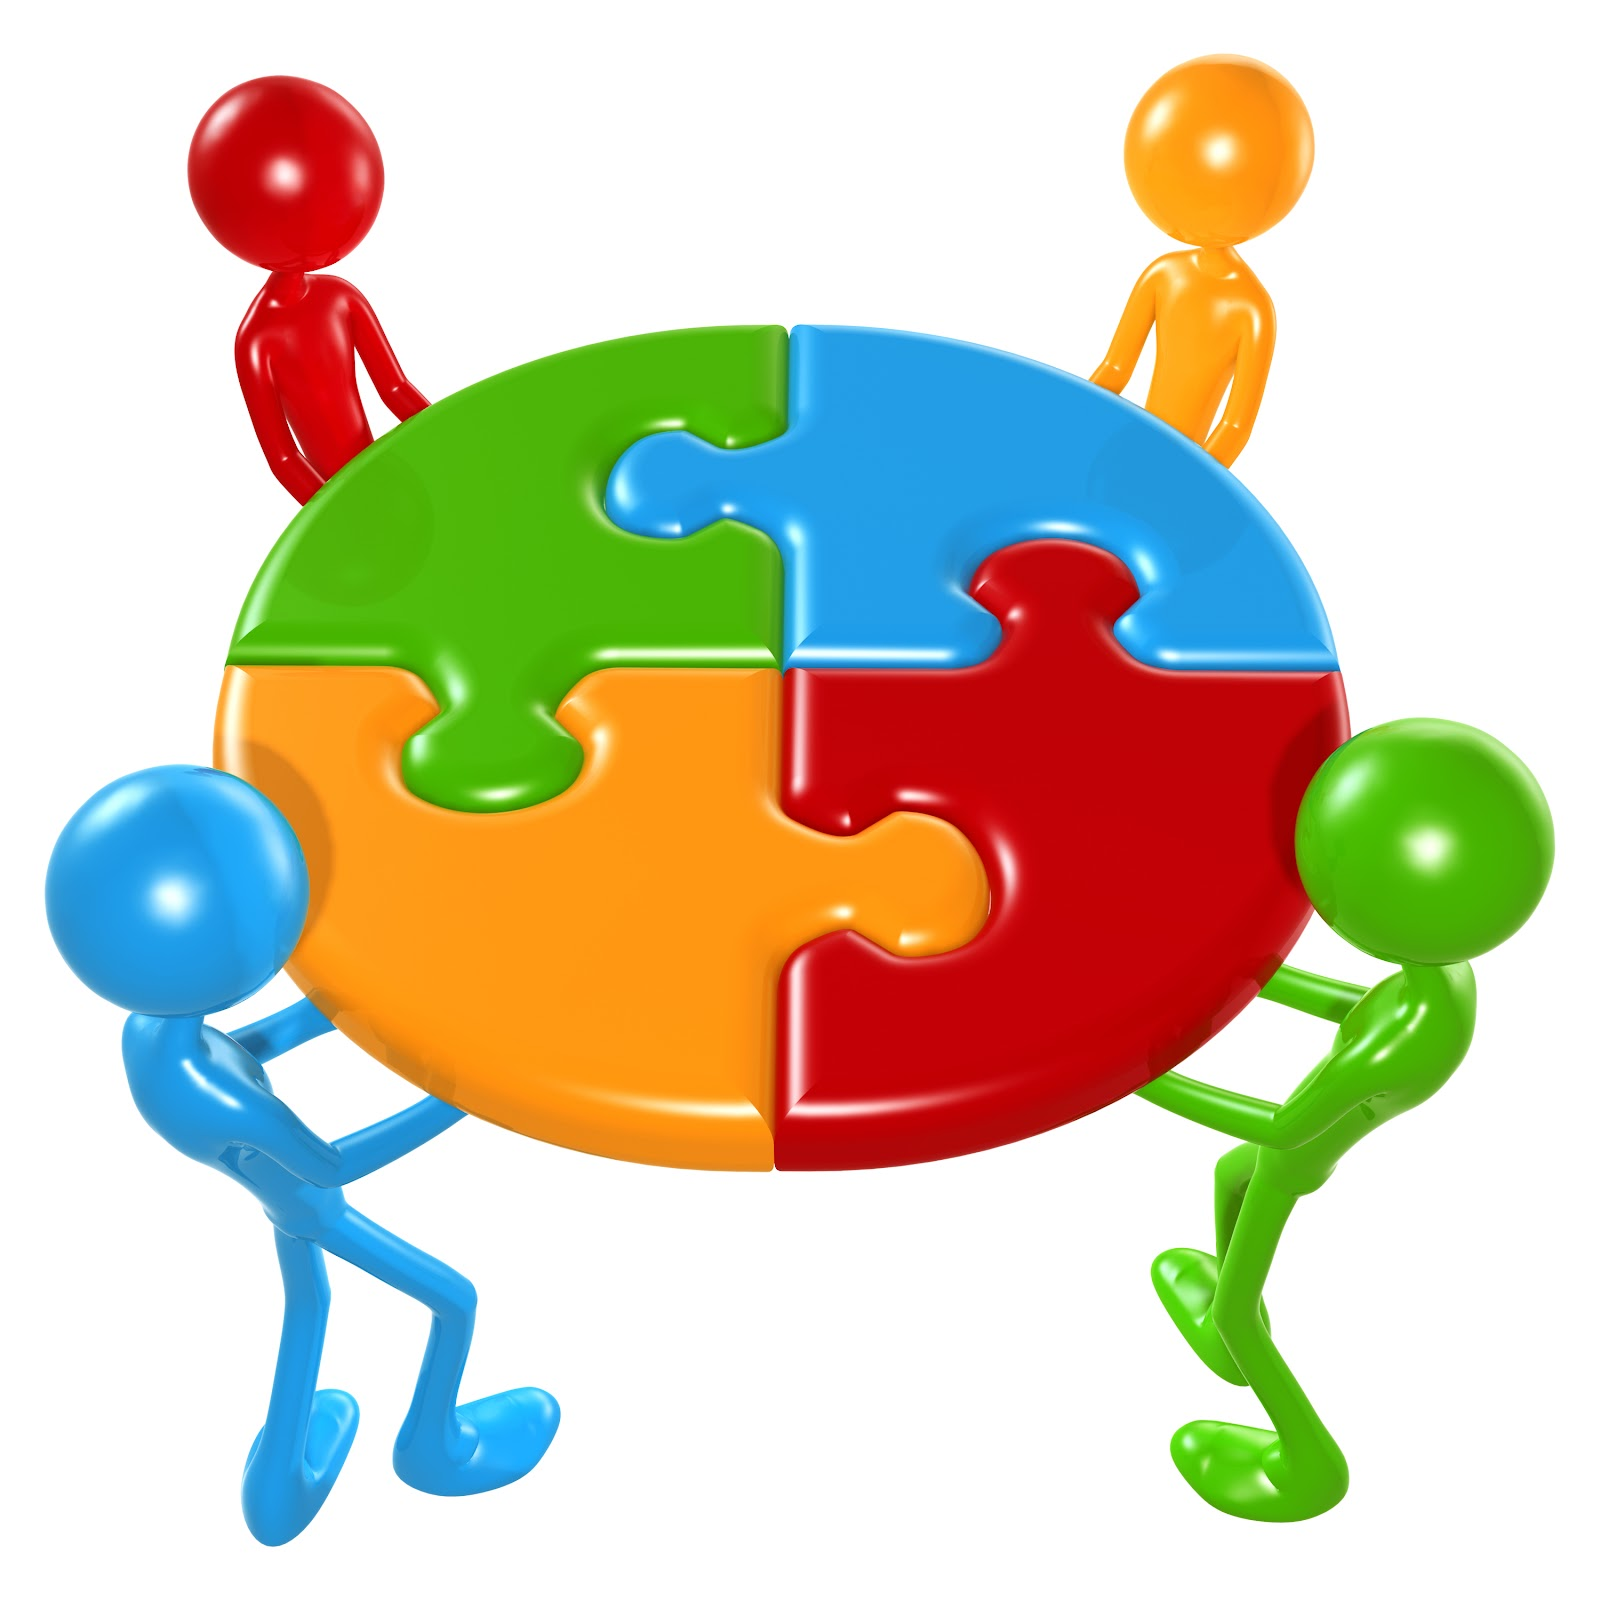 File:Working Together Teamwork Puzzle Concept.jpg - Wikimedia Commons